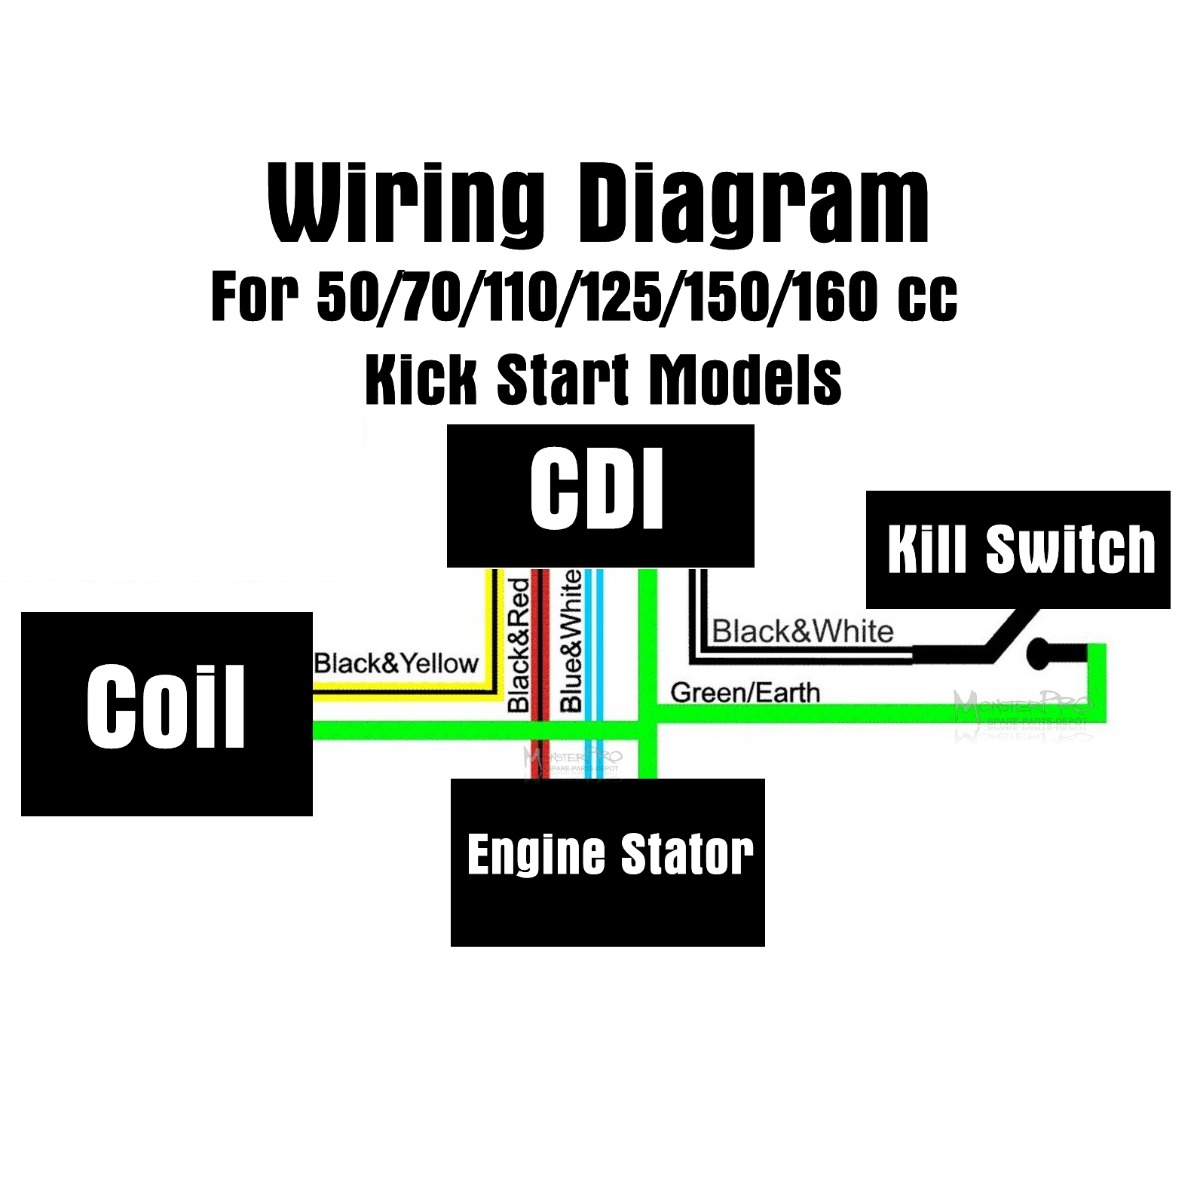 125 Pit Bike Wiring Diagram Moreover Lifan Lifan 200Cc